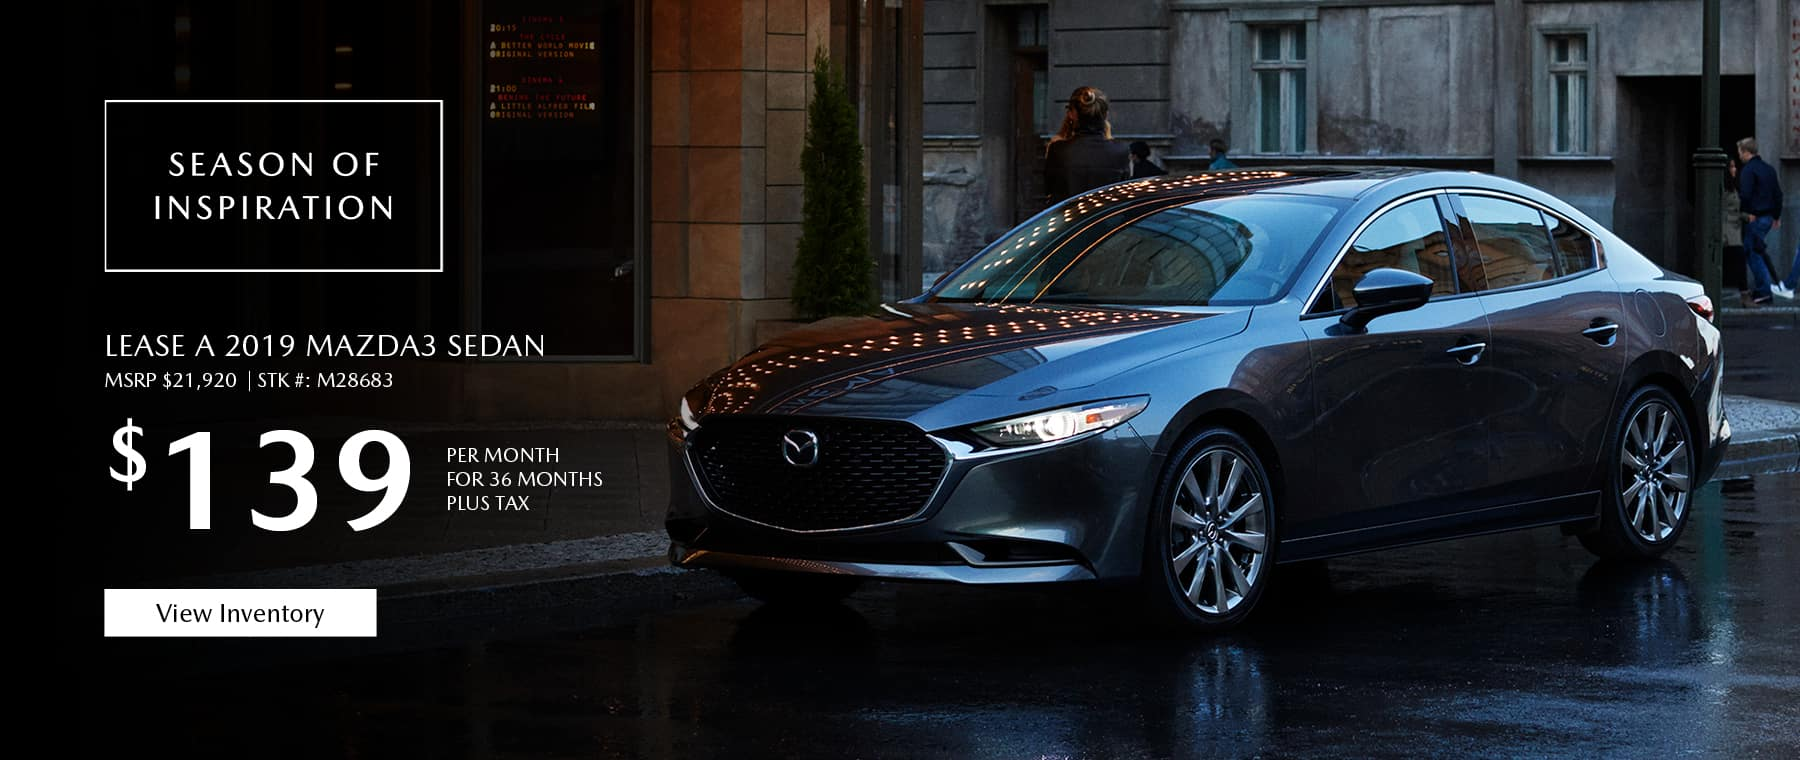 Lease the 2019 Mazda3 sedan for $139 per month, plus tax.